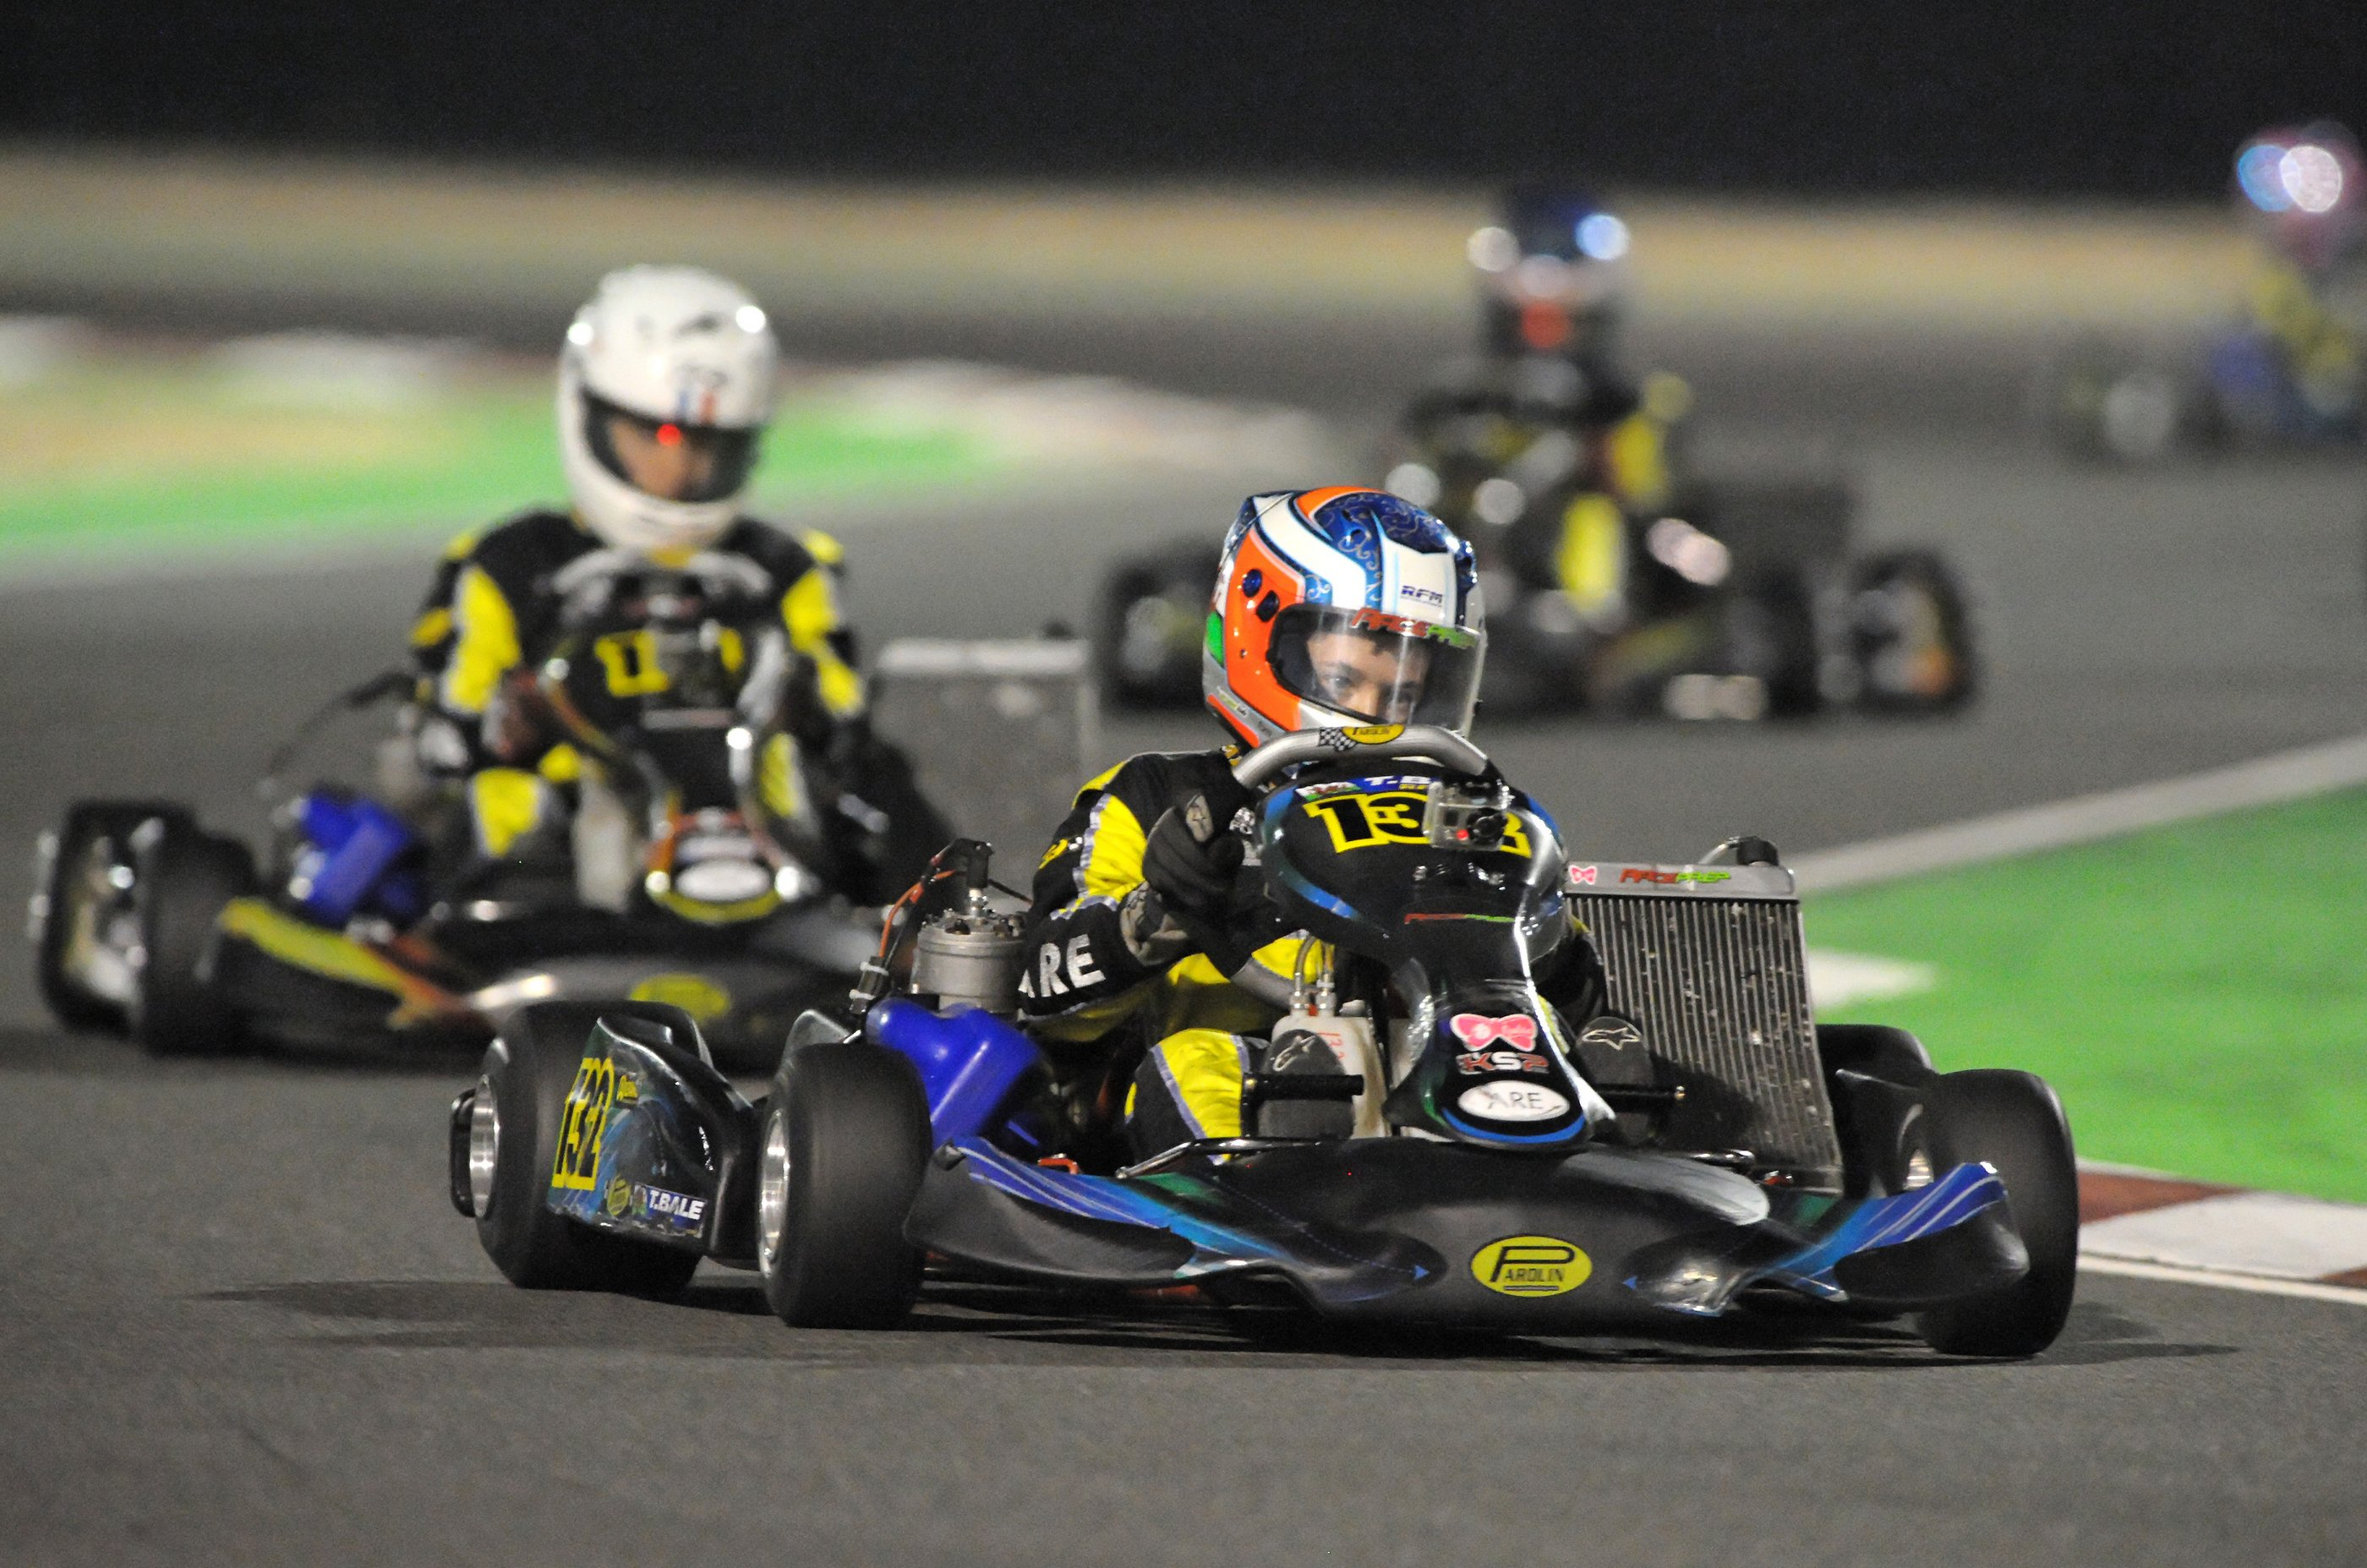 CIK-FIA Karting: Dubai schoolboy Tom Bale triumphs at world championships in Bahrain